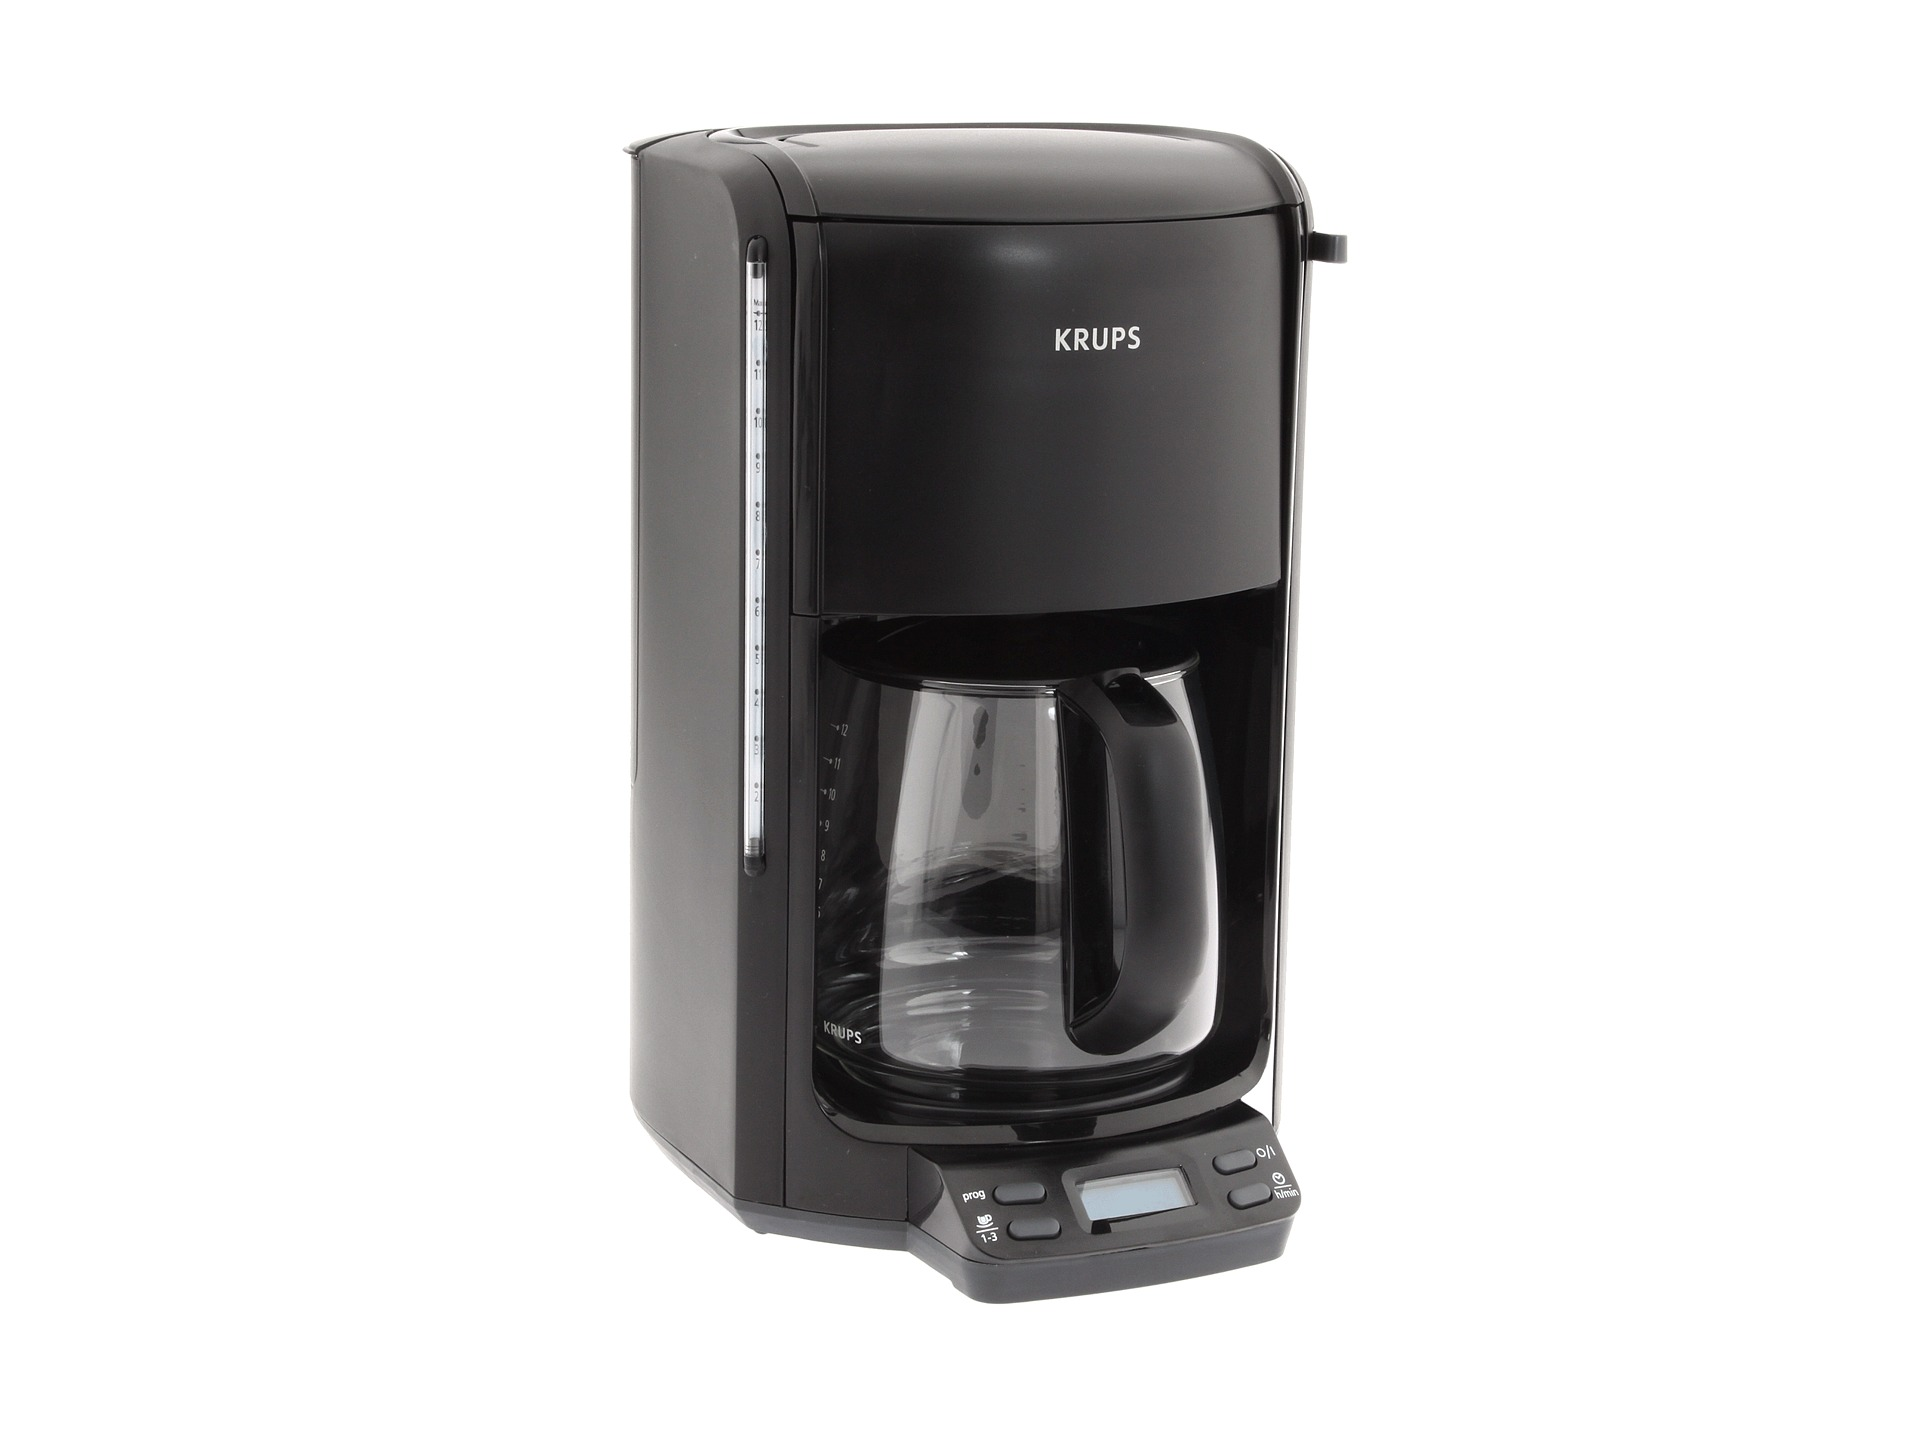 krups fme2 pro aroma 12 cup coffee maker black shipped free at zappos. Black Bedroom Furniture Sets. Home Design Ideas